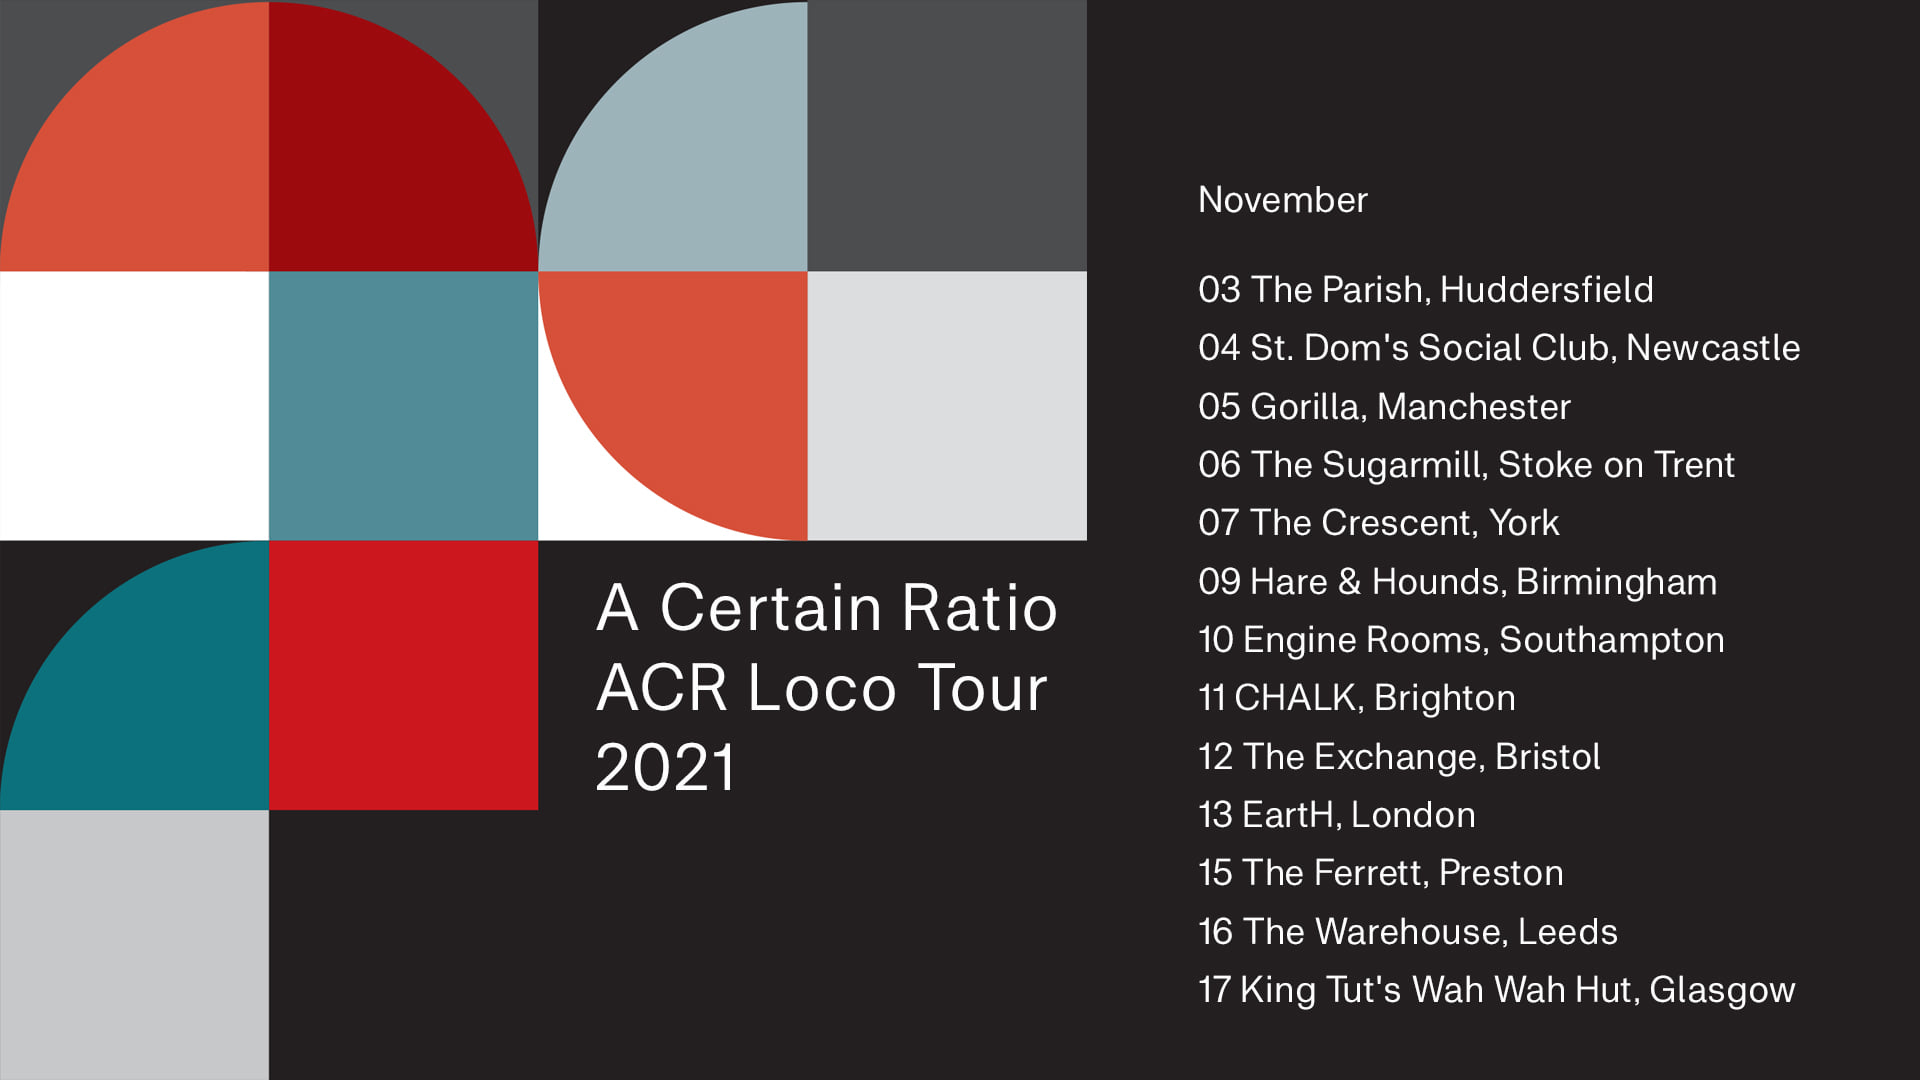 A Certain Ratio - ACR Loco Tour 2021